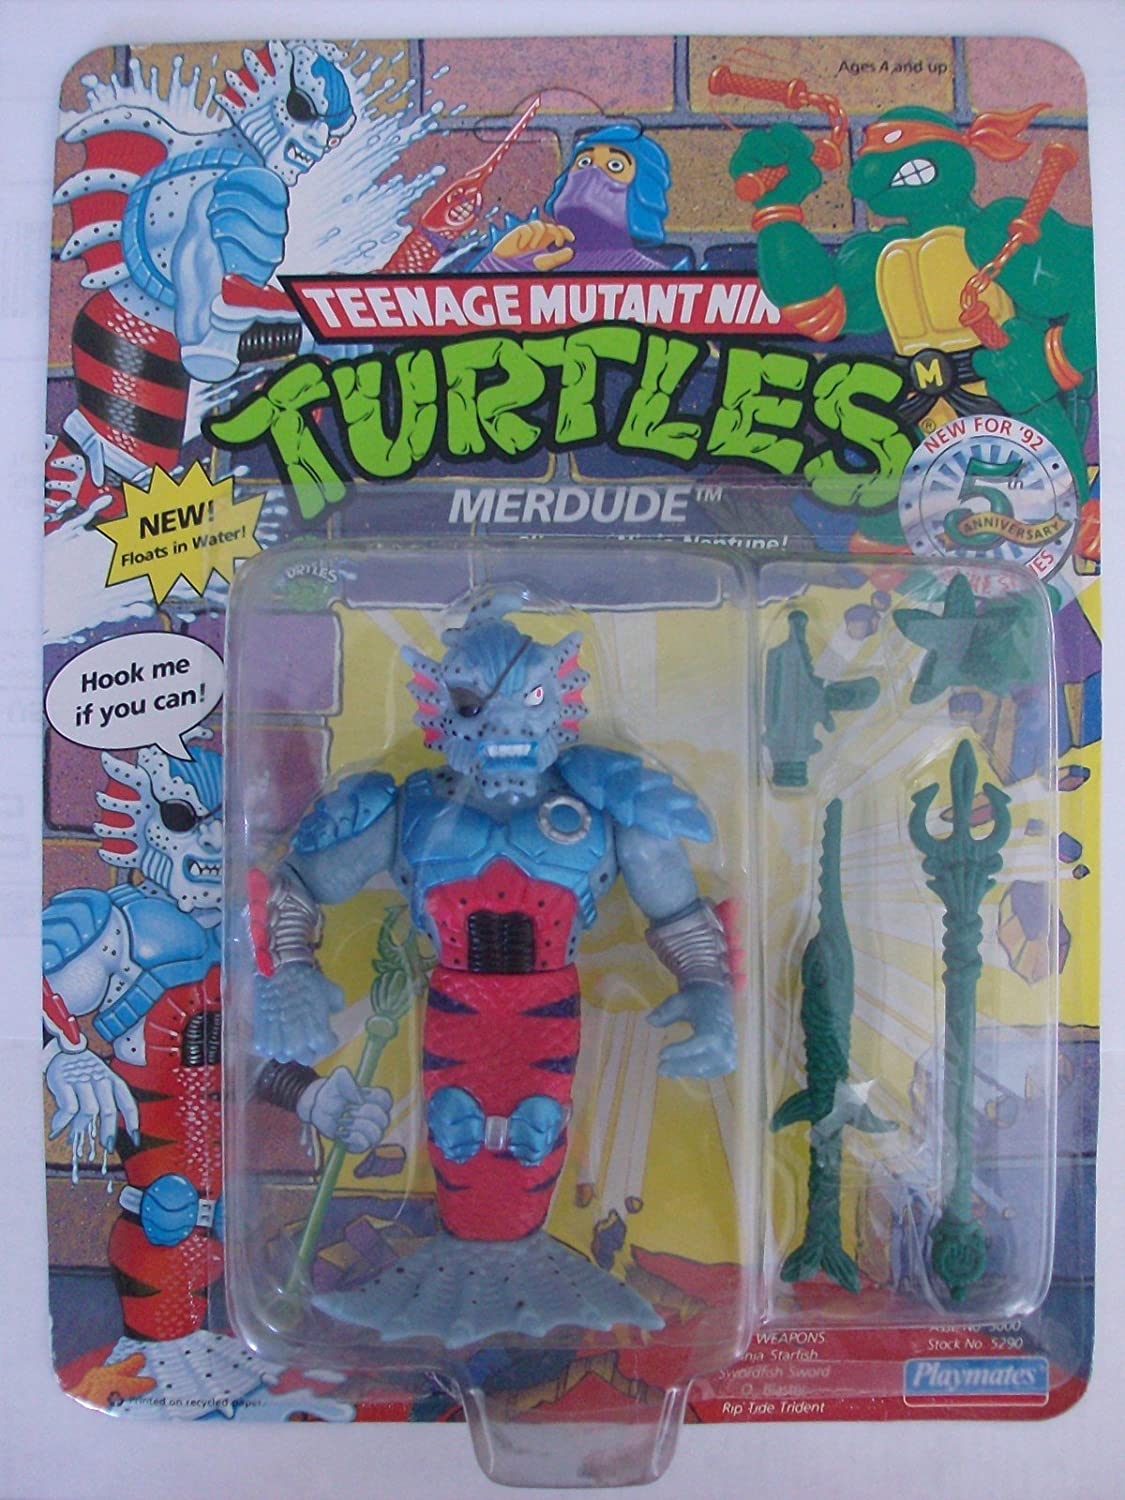 Amazon.com: TMNT merdude: Toys & Games